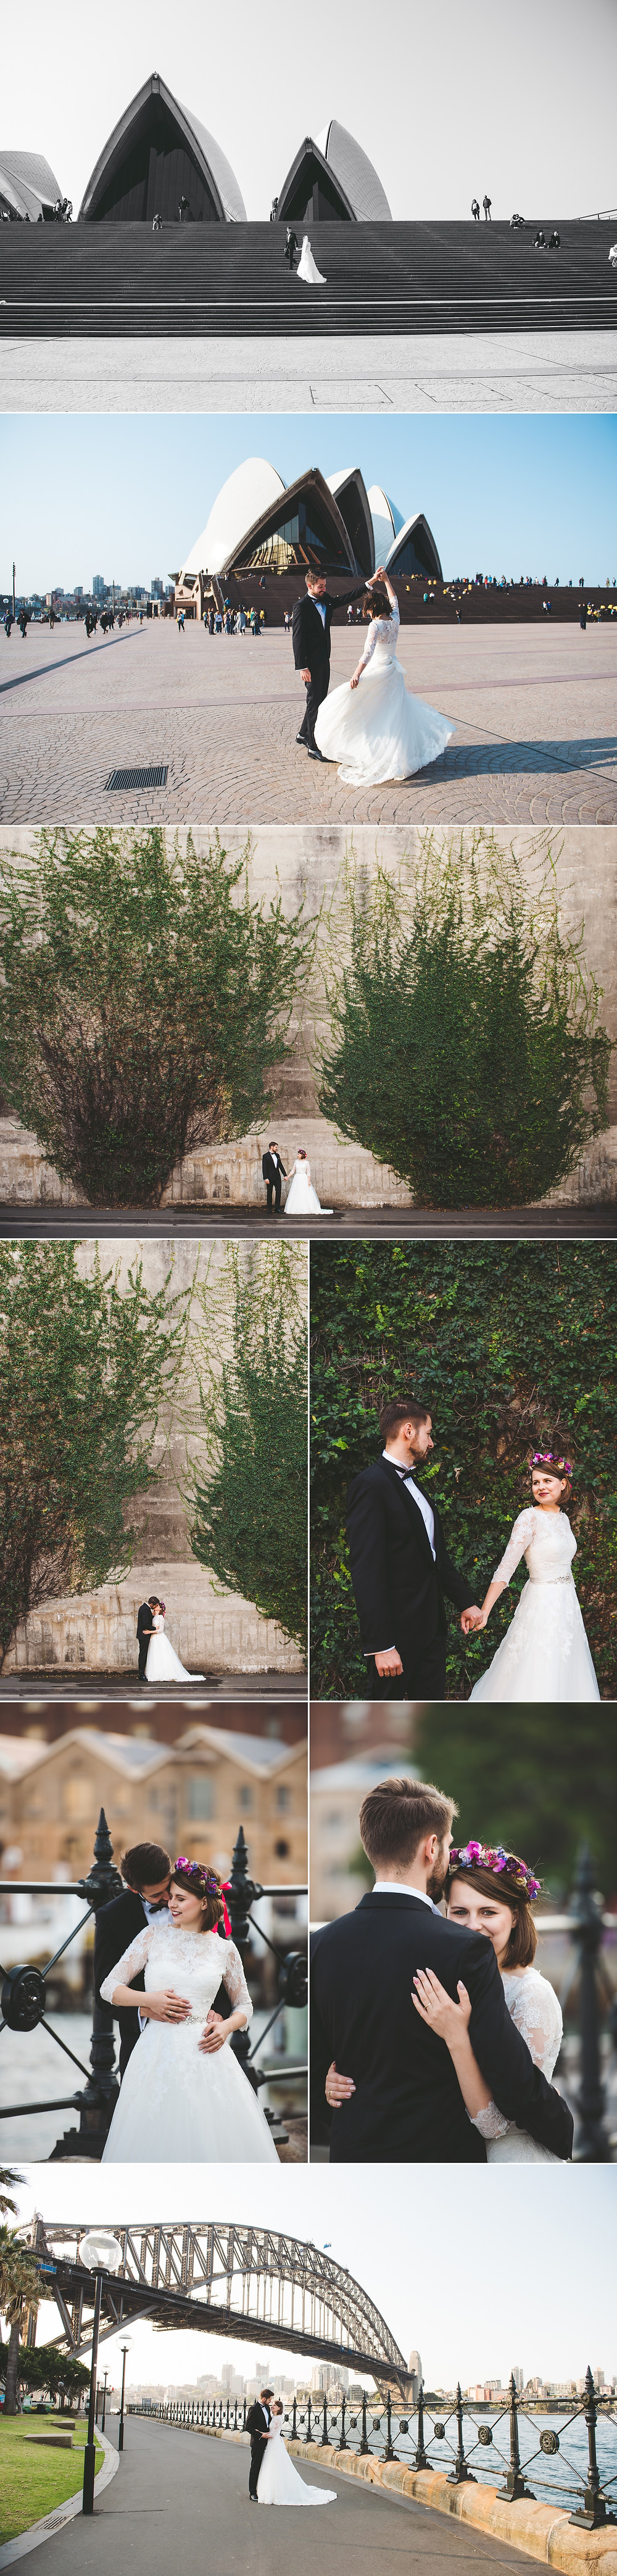 Wedding Photography, Sydney Harbour Bridge, Opera House